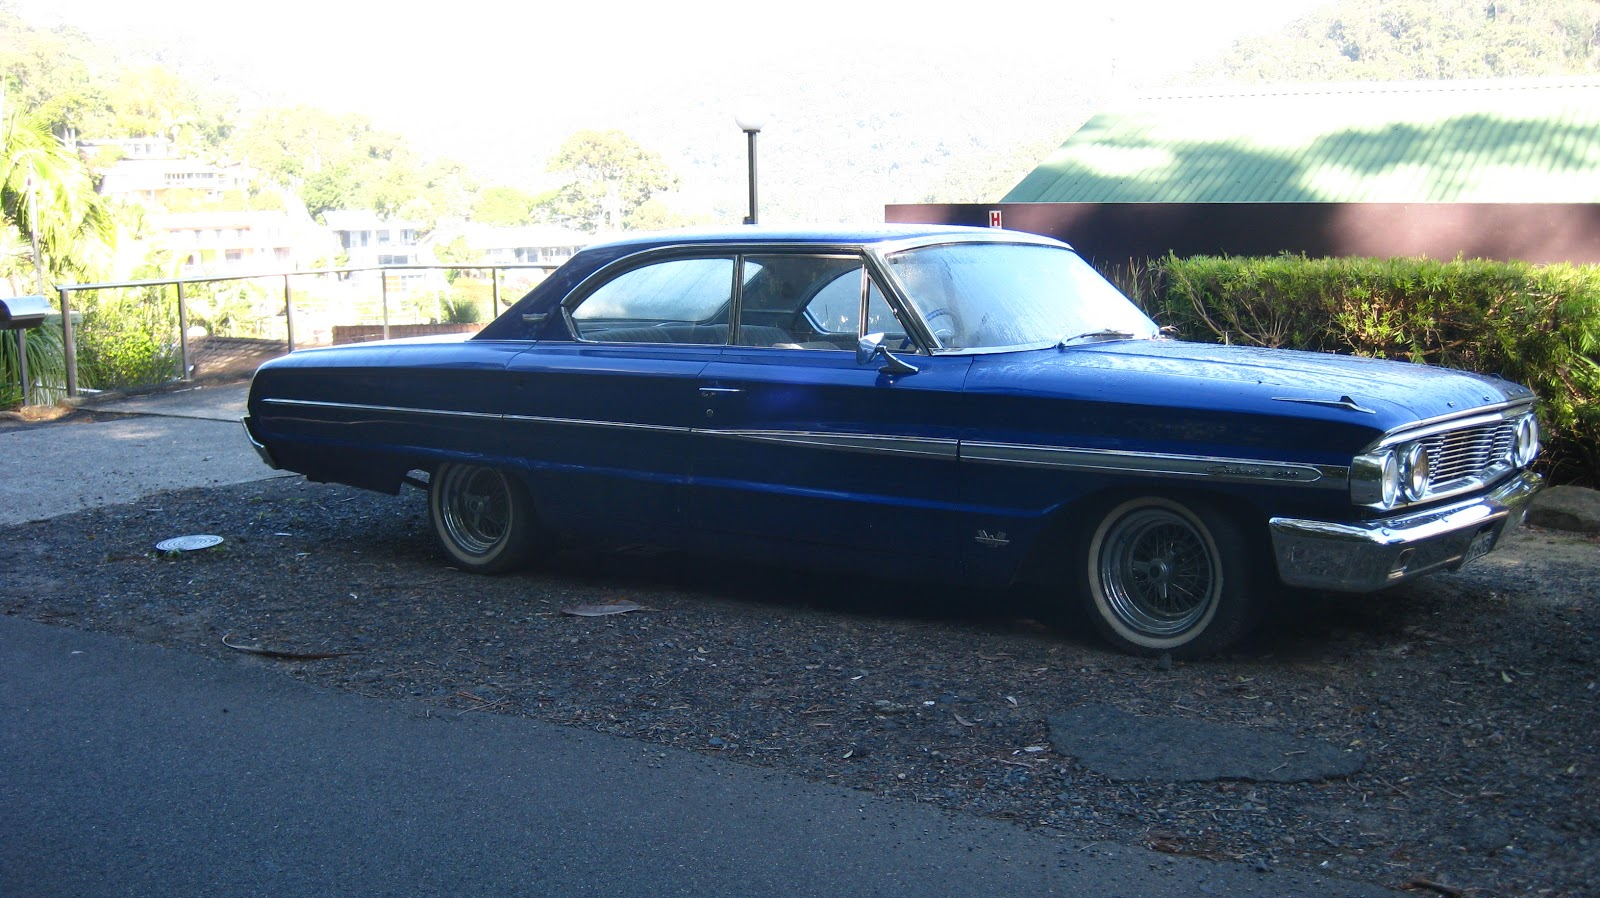 Aussie Old Parked Cars 1964 Ford Galaxie 500 390 Cid 4 Door Hardtop Crew Cab